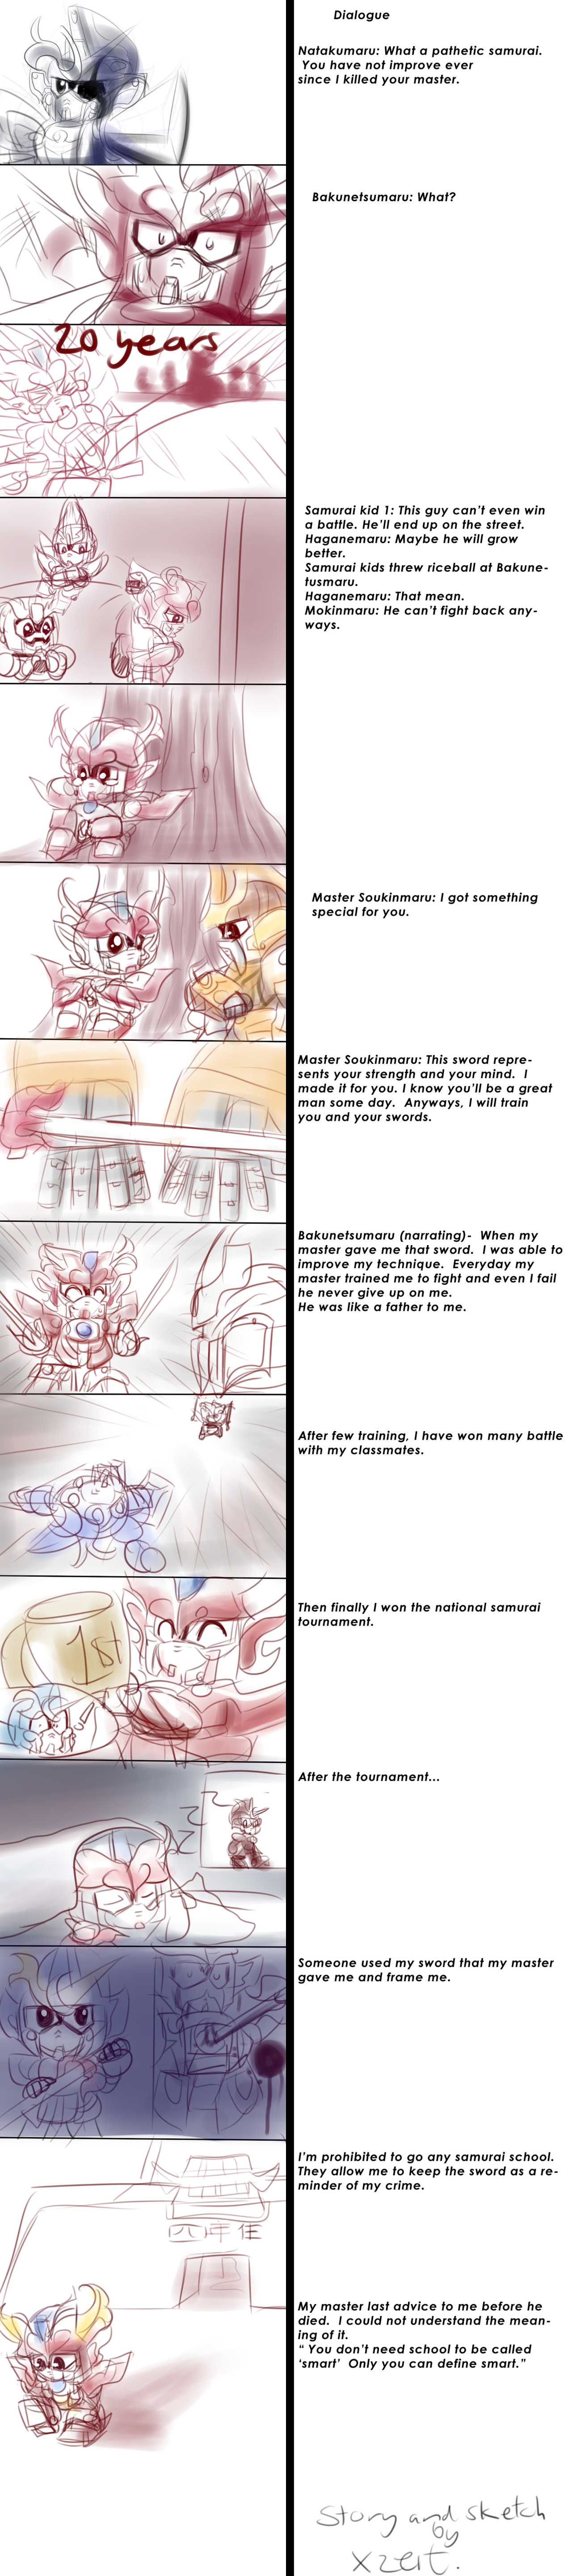 Baku's past storyboard by Xzeit